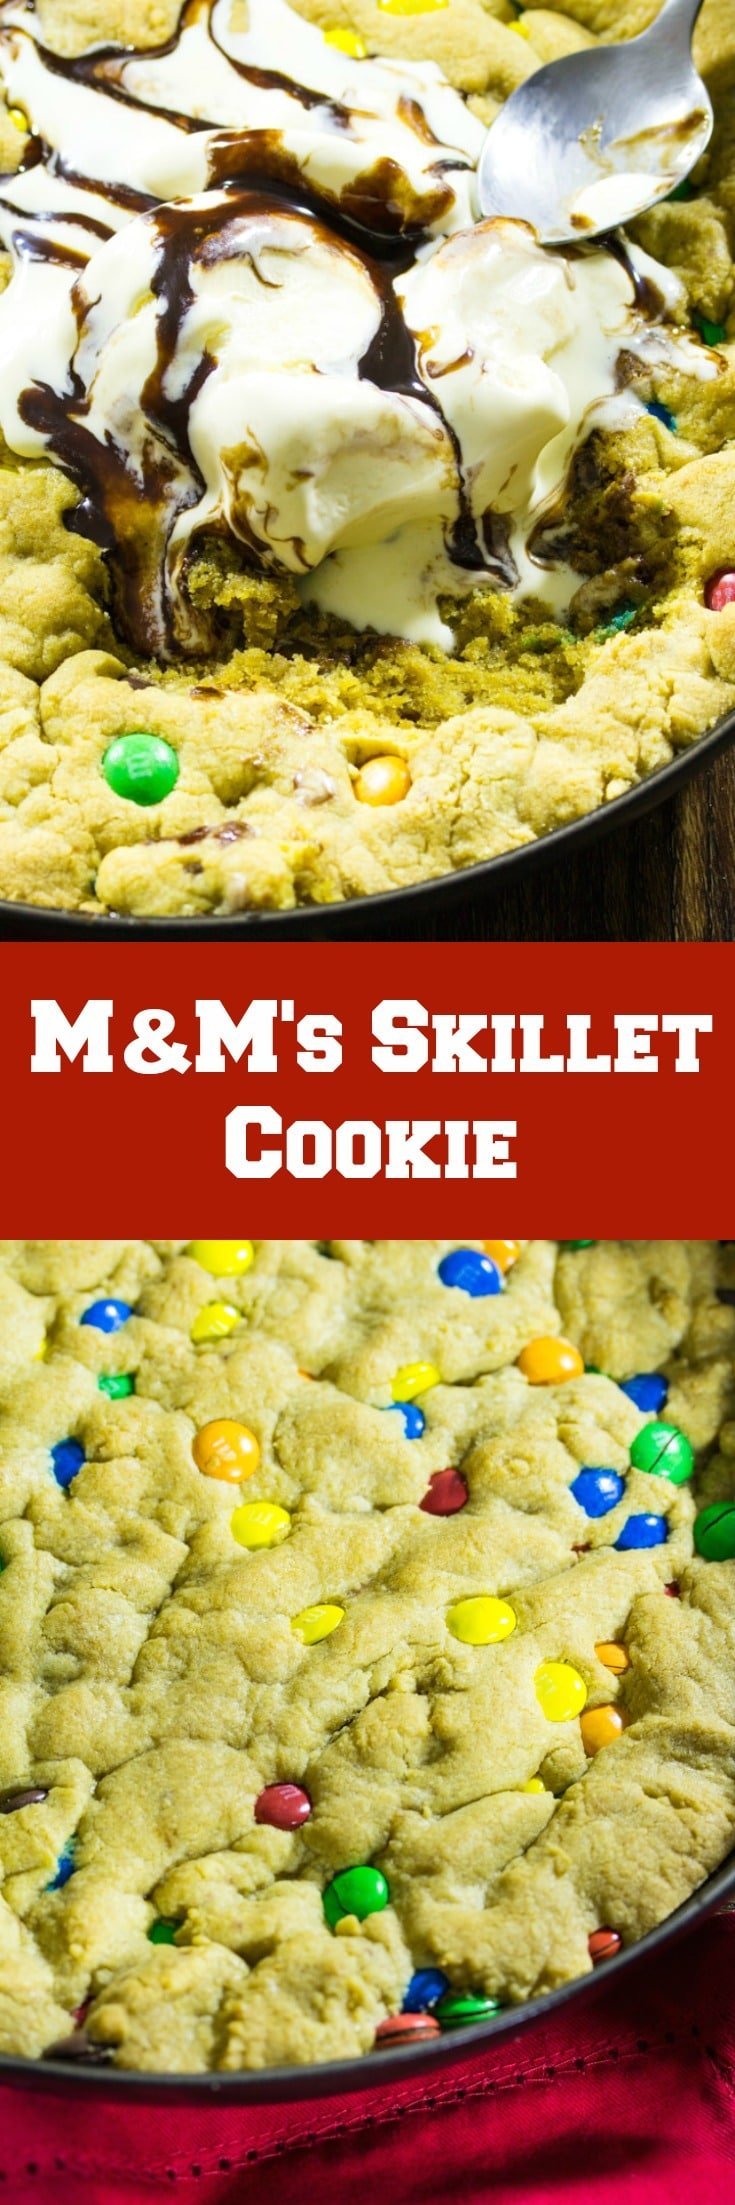 M&M's Skillet Cookie